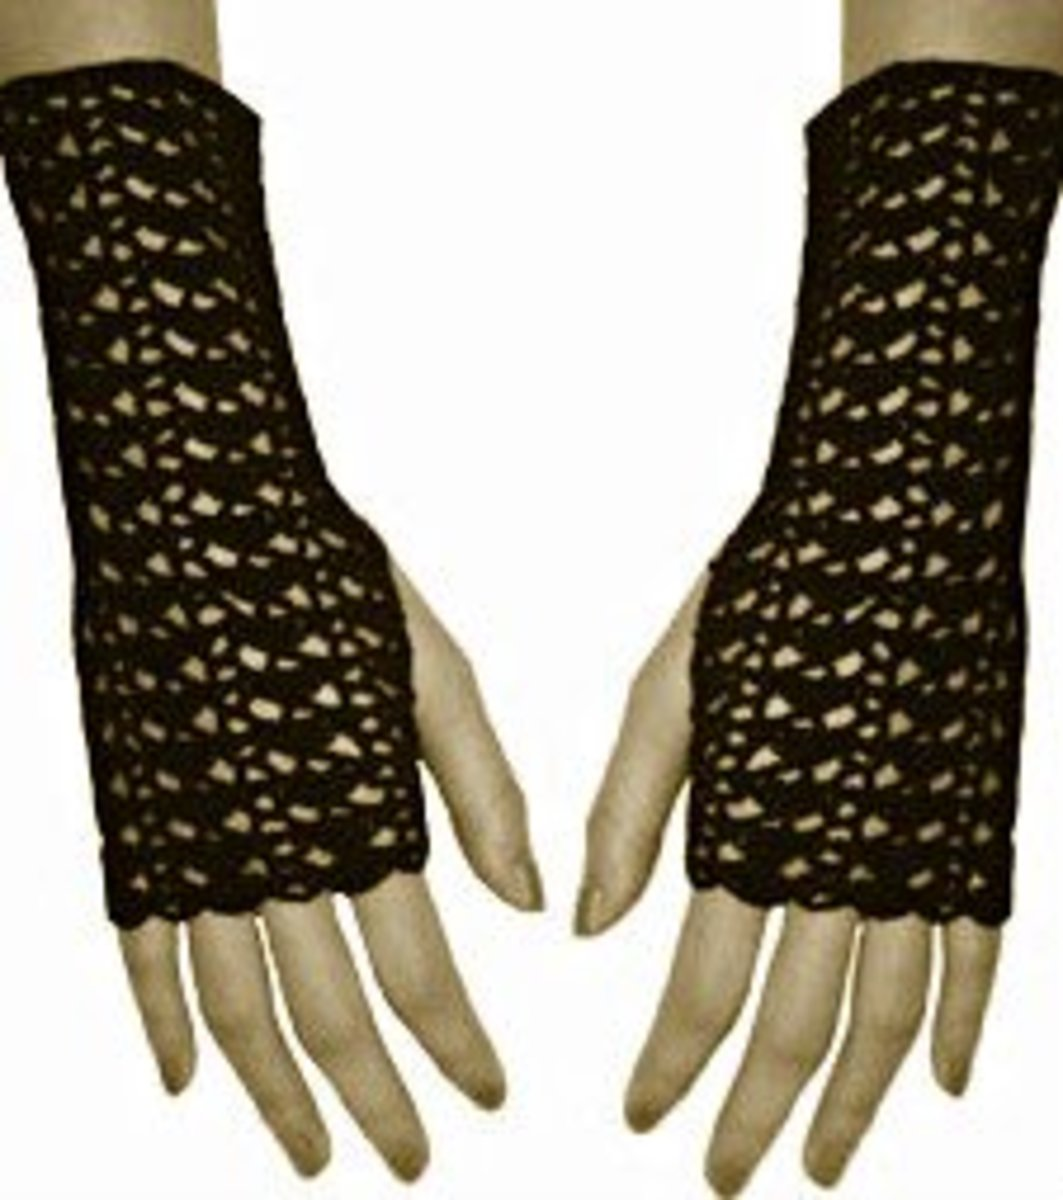 Fingerless gloves in black.